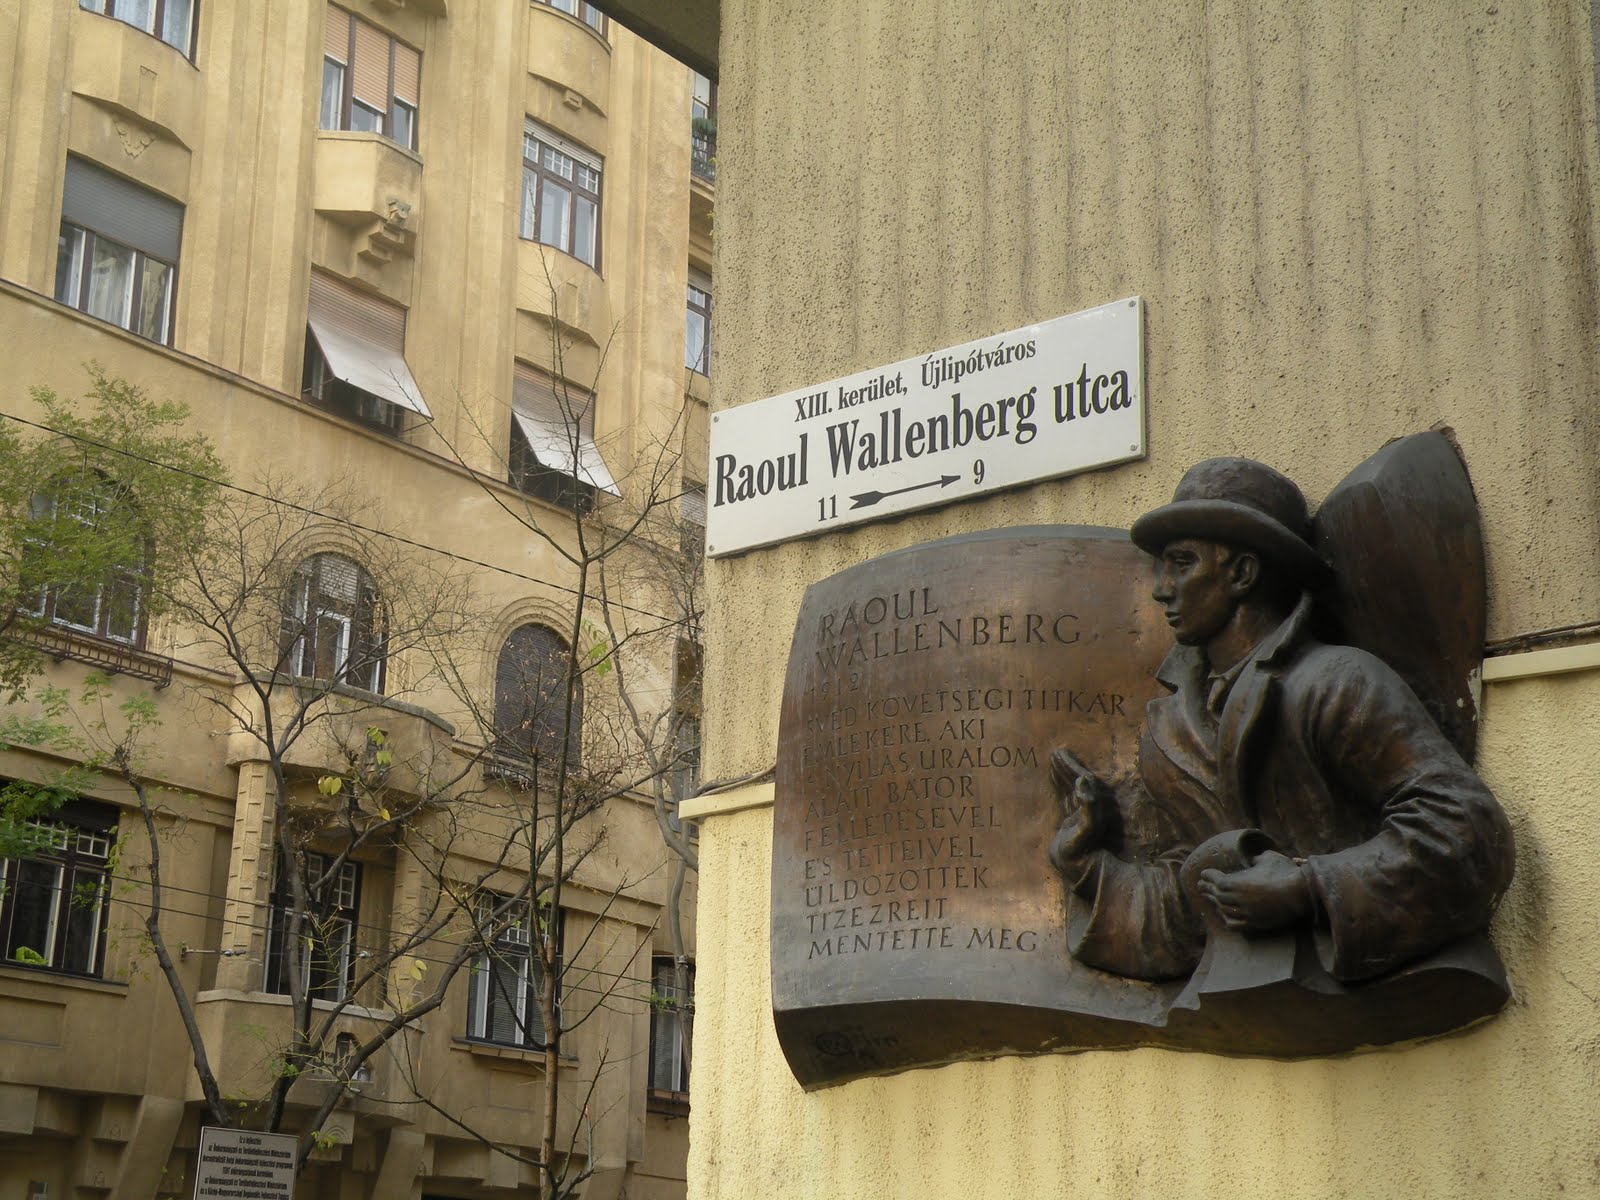 raoul wallenberg arrives in budapest hungary